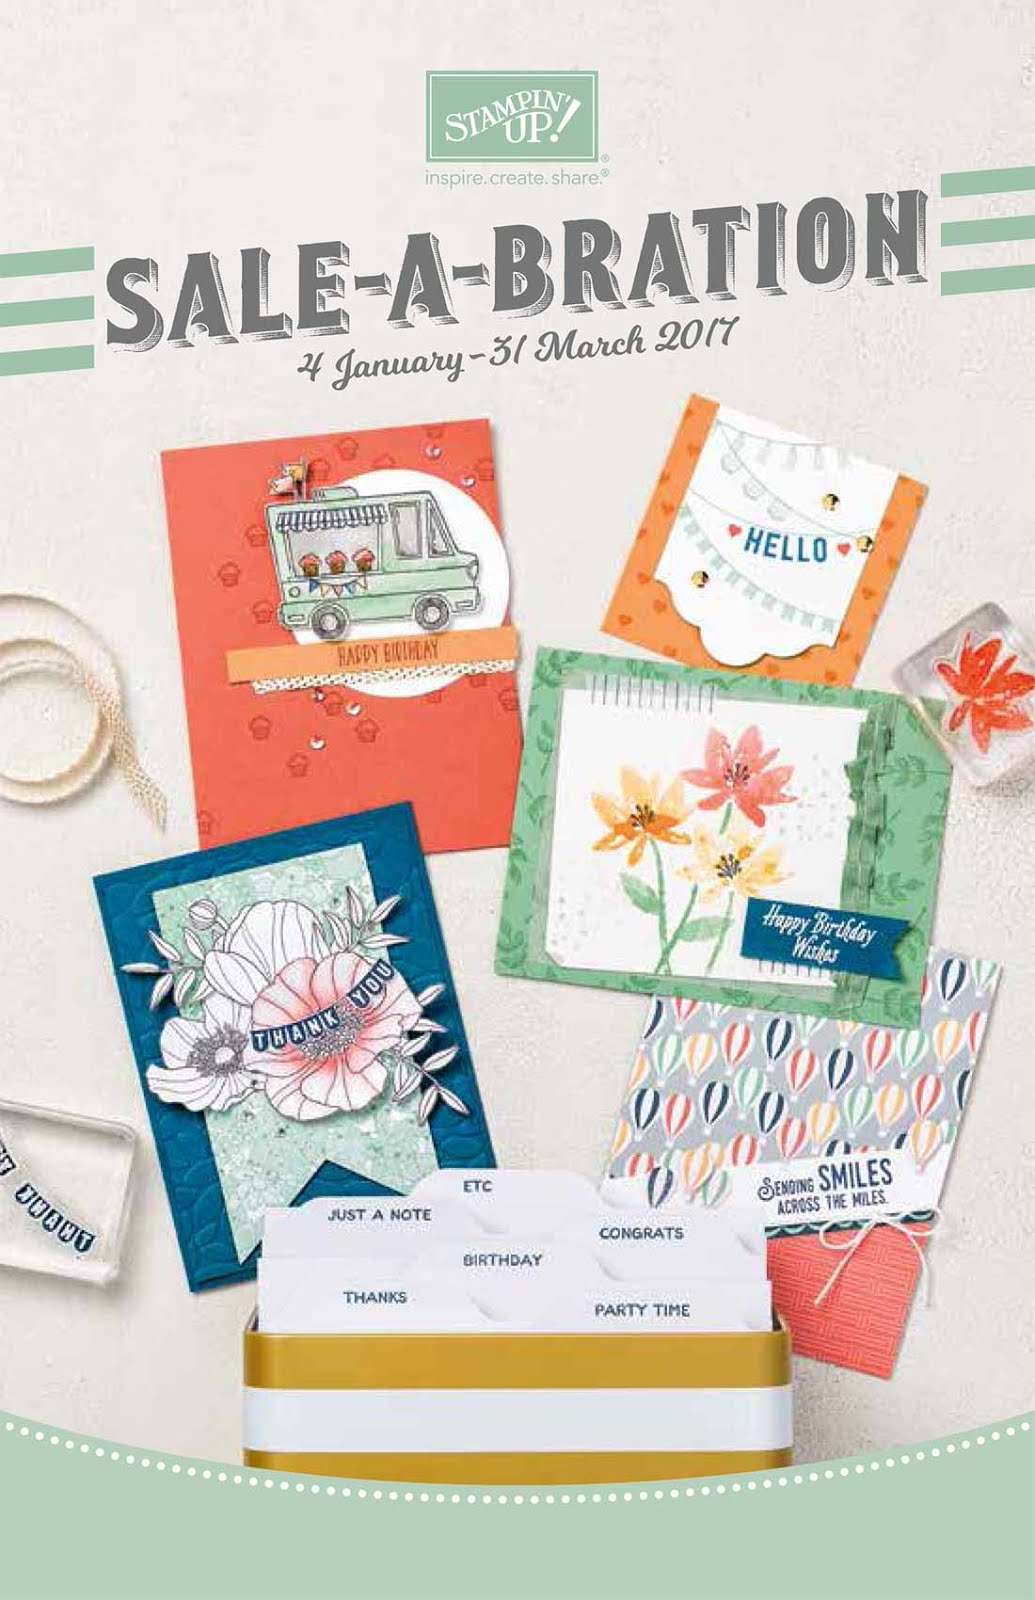 Spend $90 on my online store and receive a FREE Sale-A-Bration item